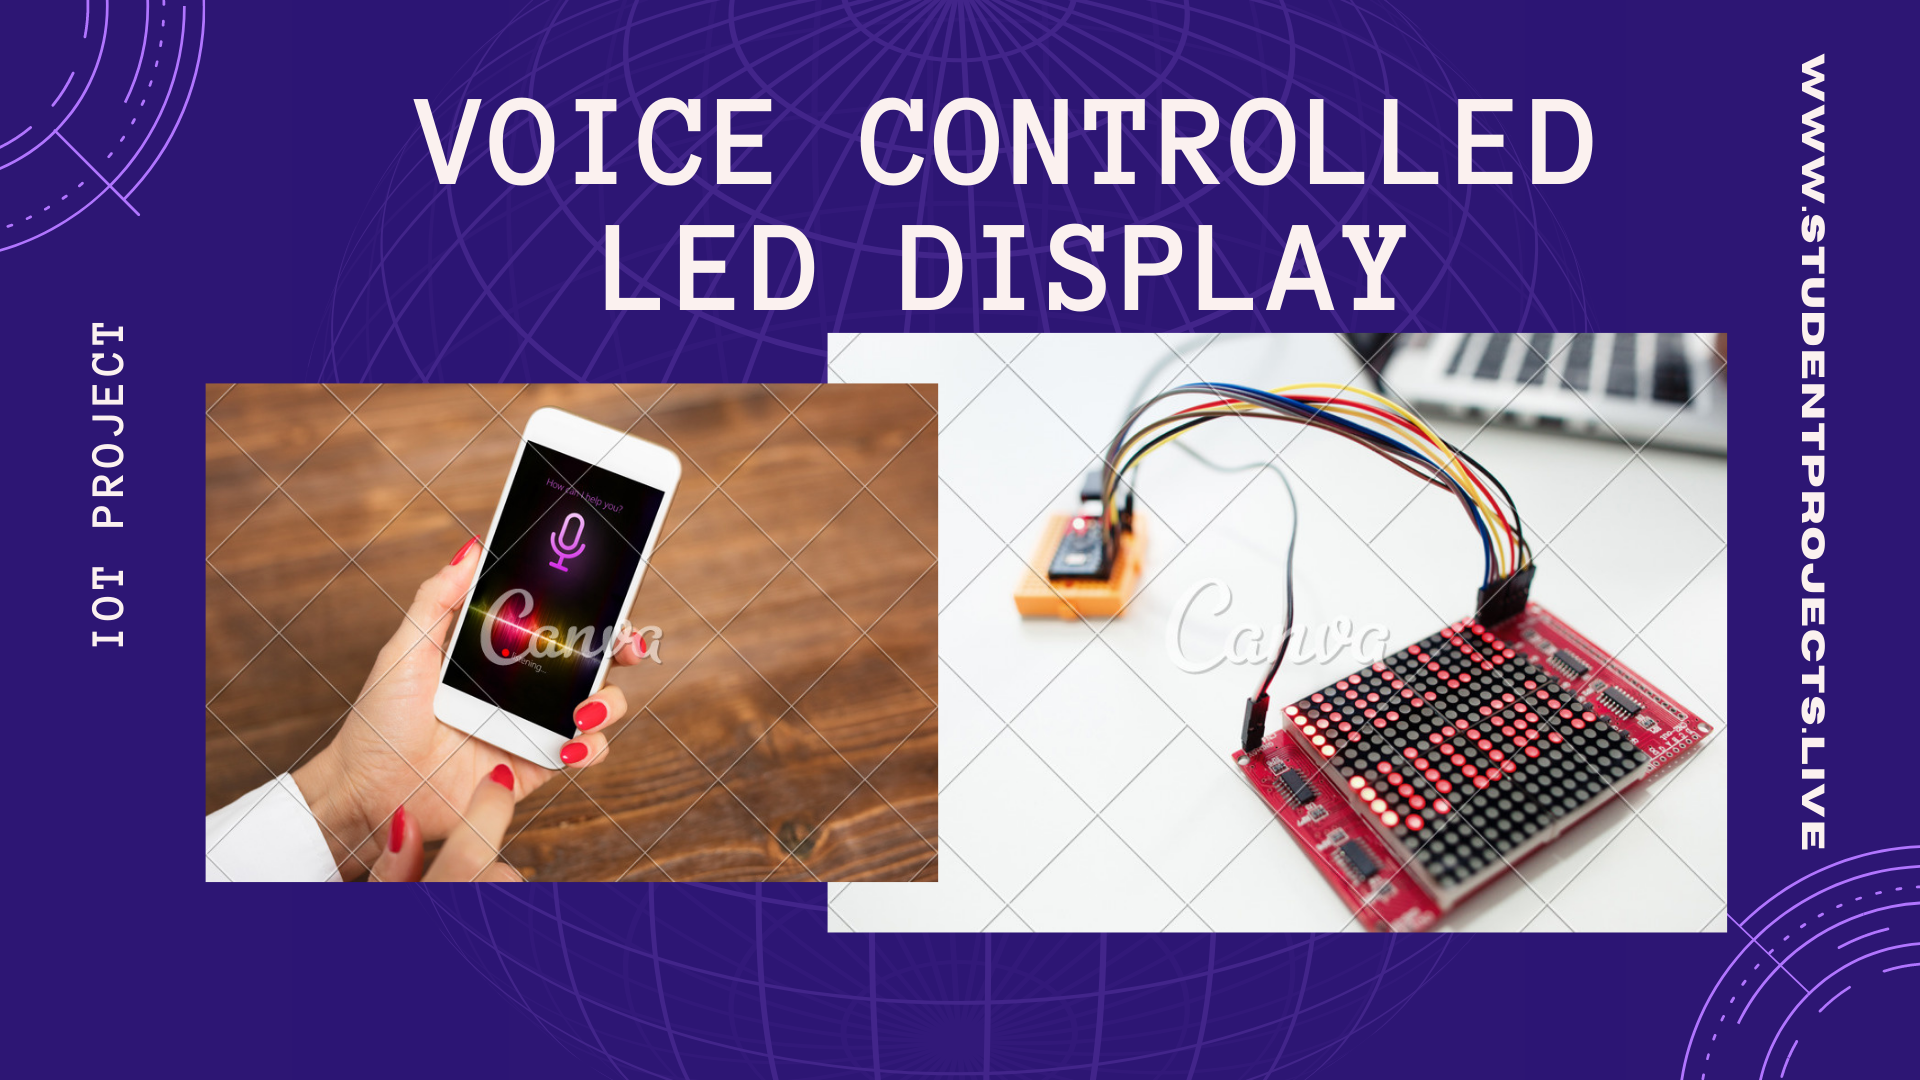 Voice controlled LED Display